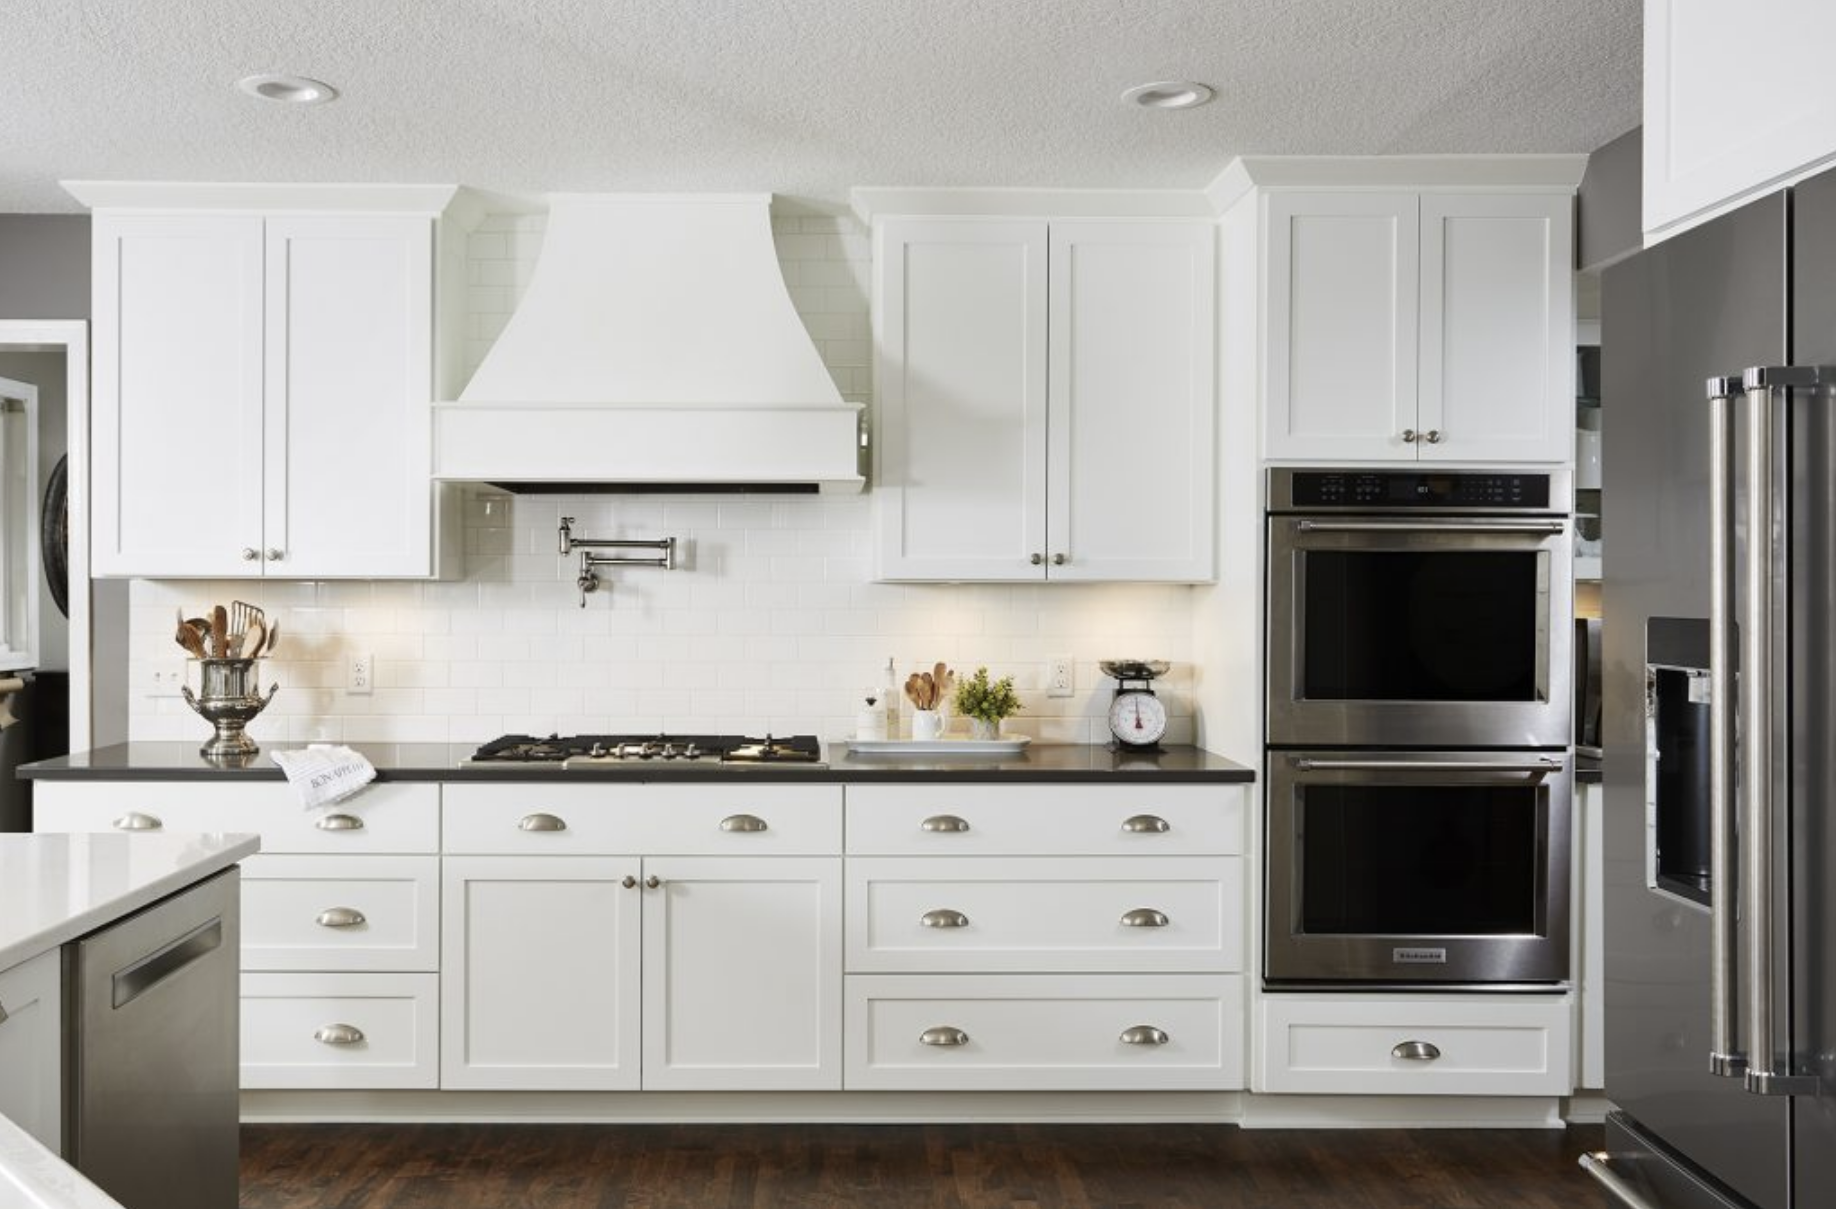 All White Cabinets And Backsplash Were